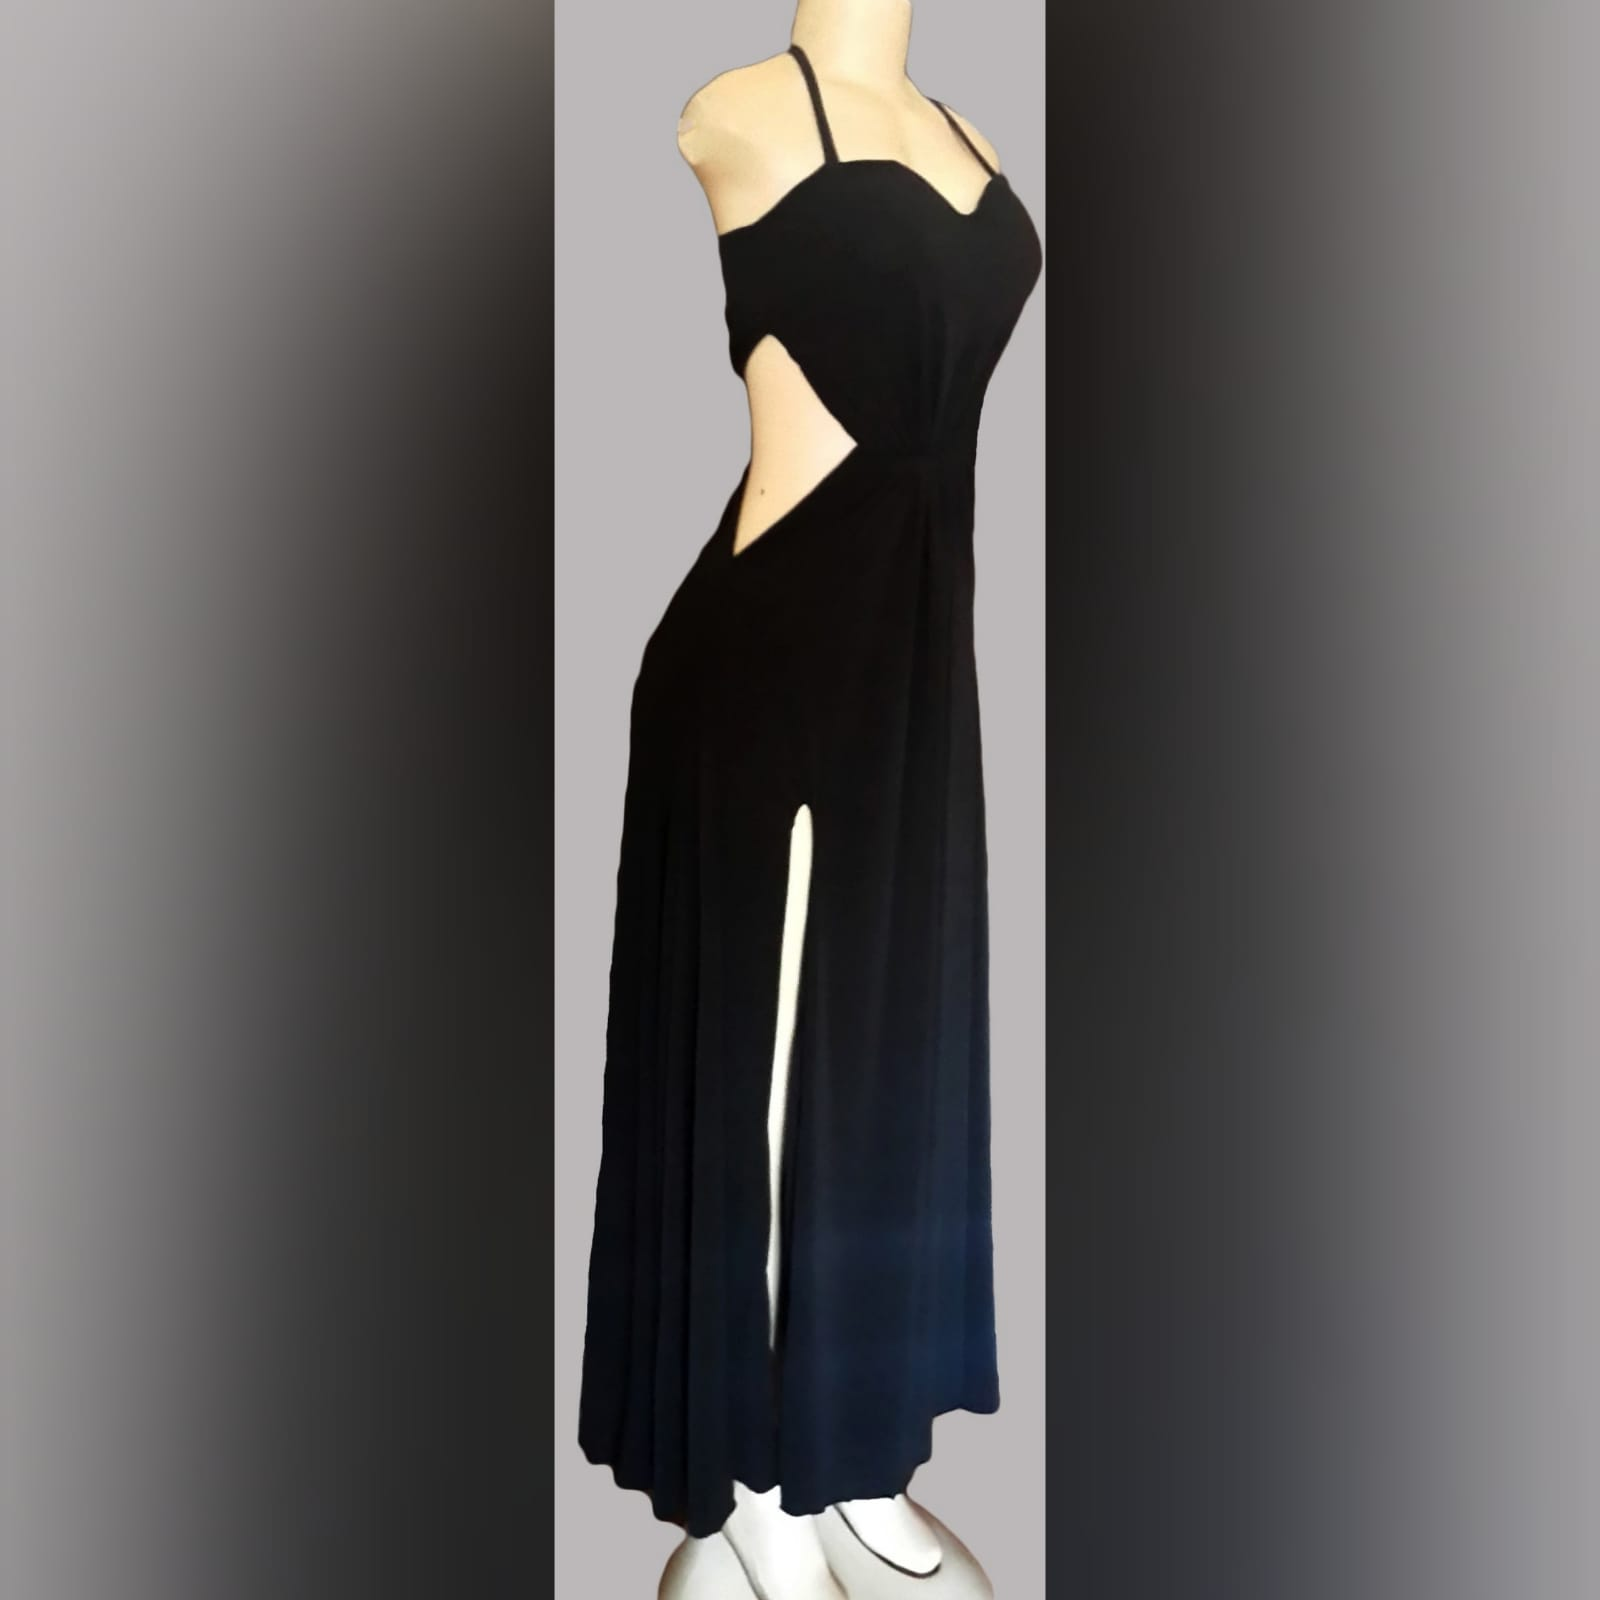 Black long flowy evening dress 1 black long flowy evening dress with side tummy openings, a slit and halter neck string